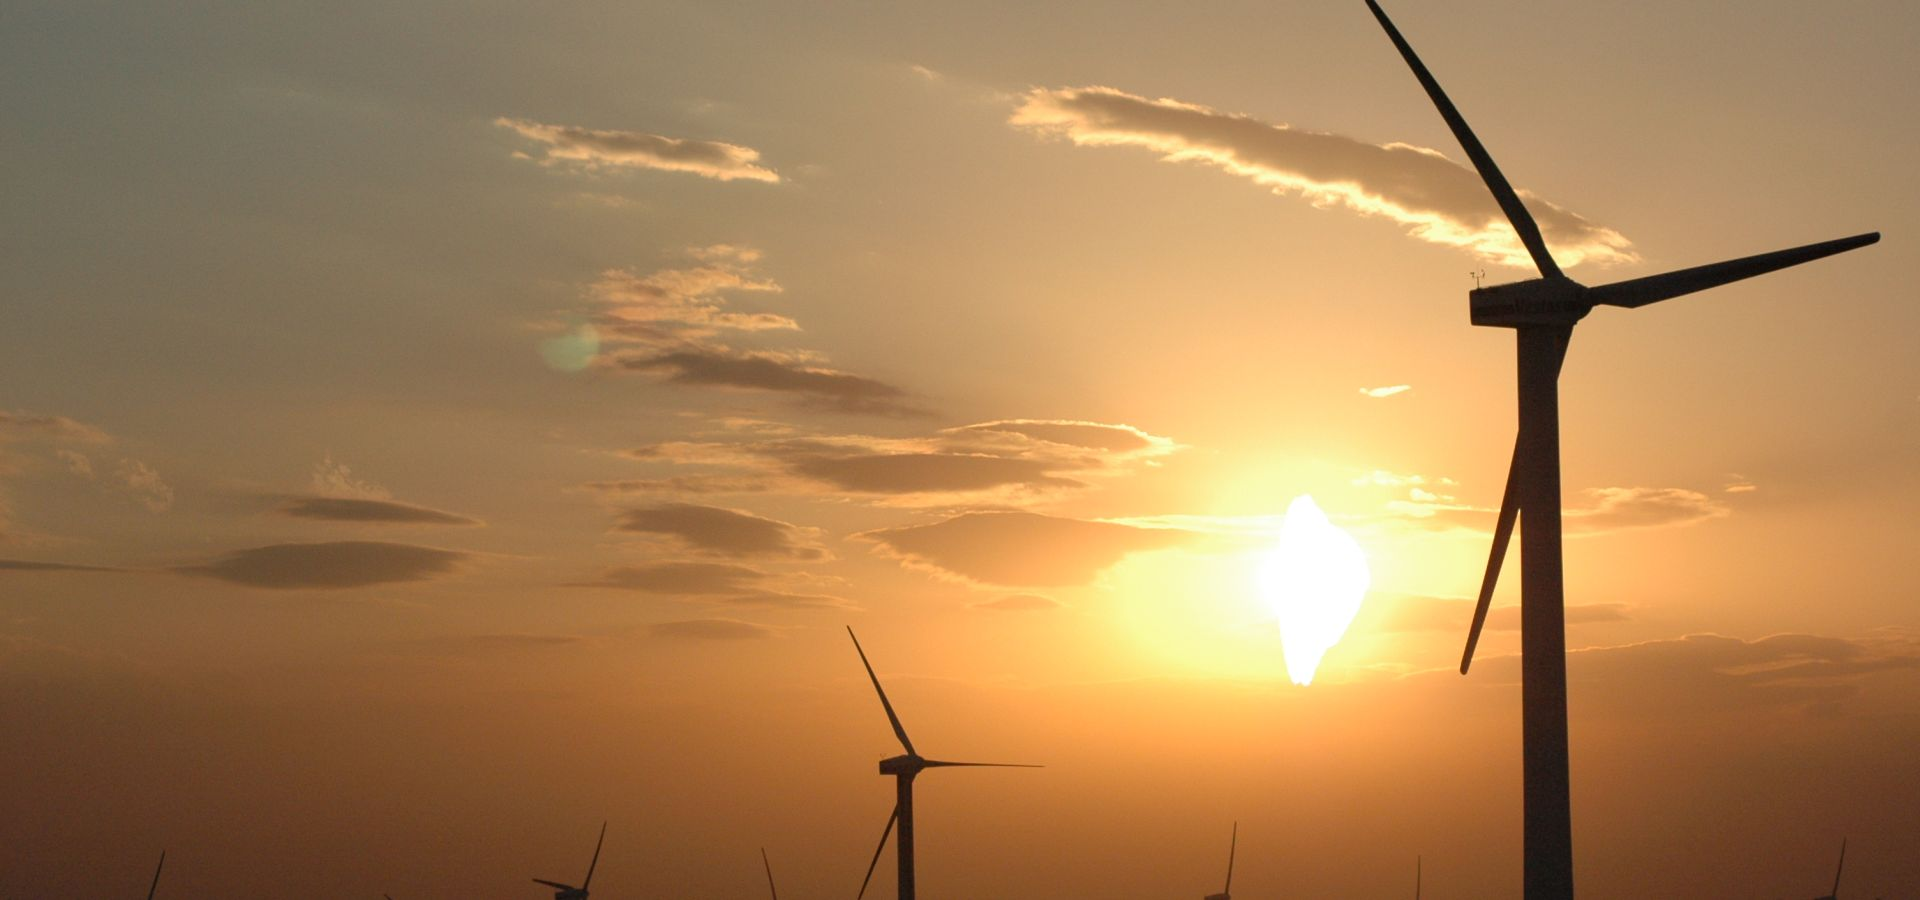 windmills in the sunset in China